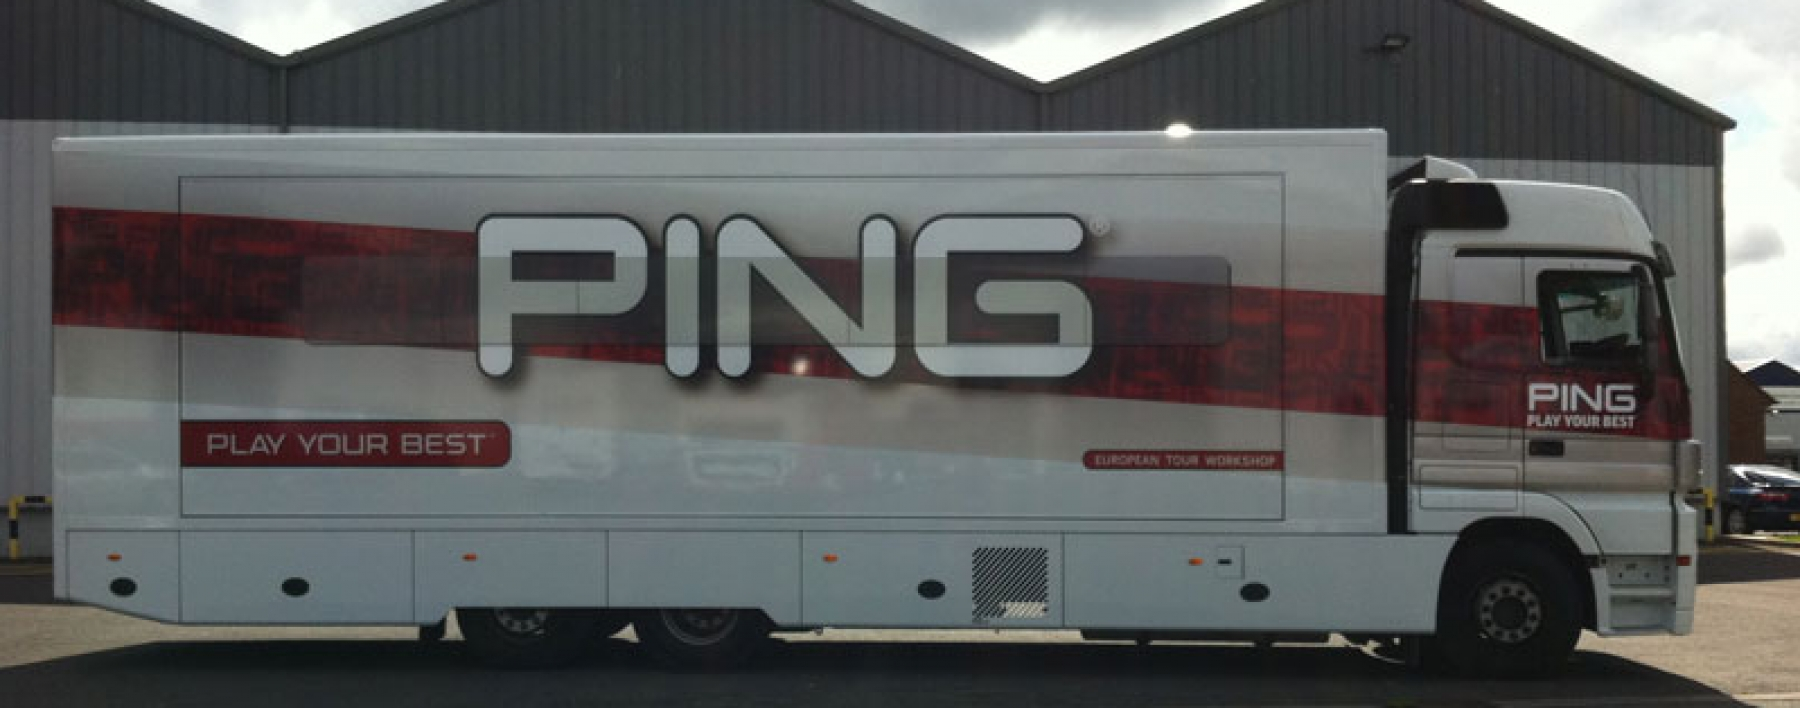 Ping trailer wrapped by Ast Transport Branding